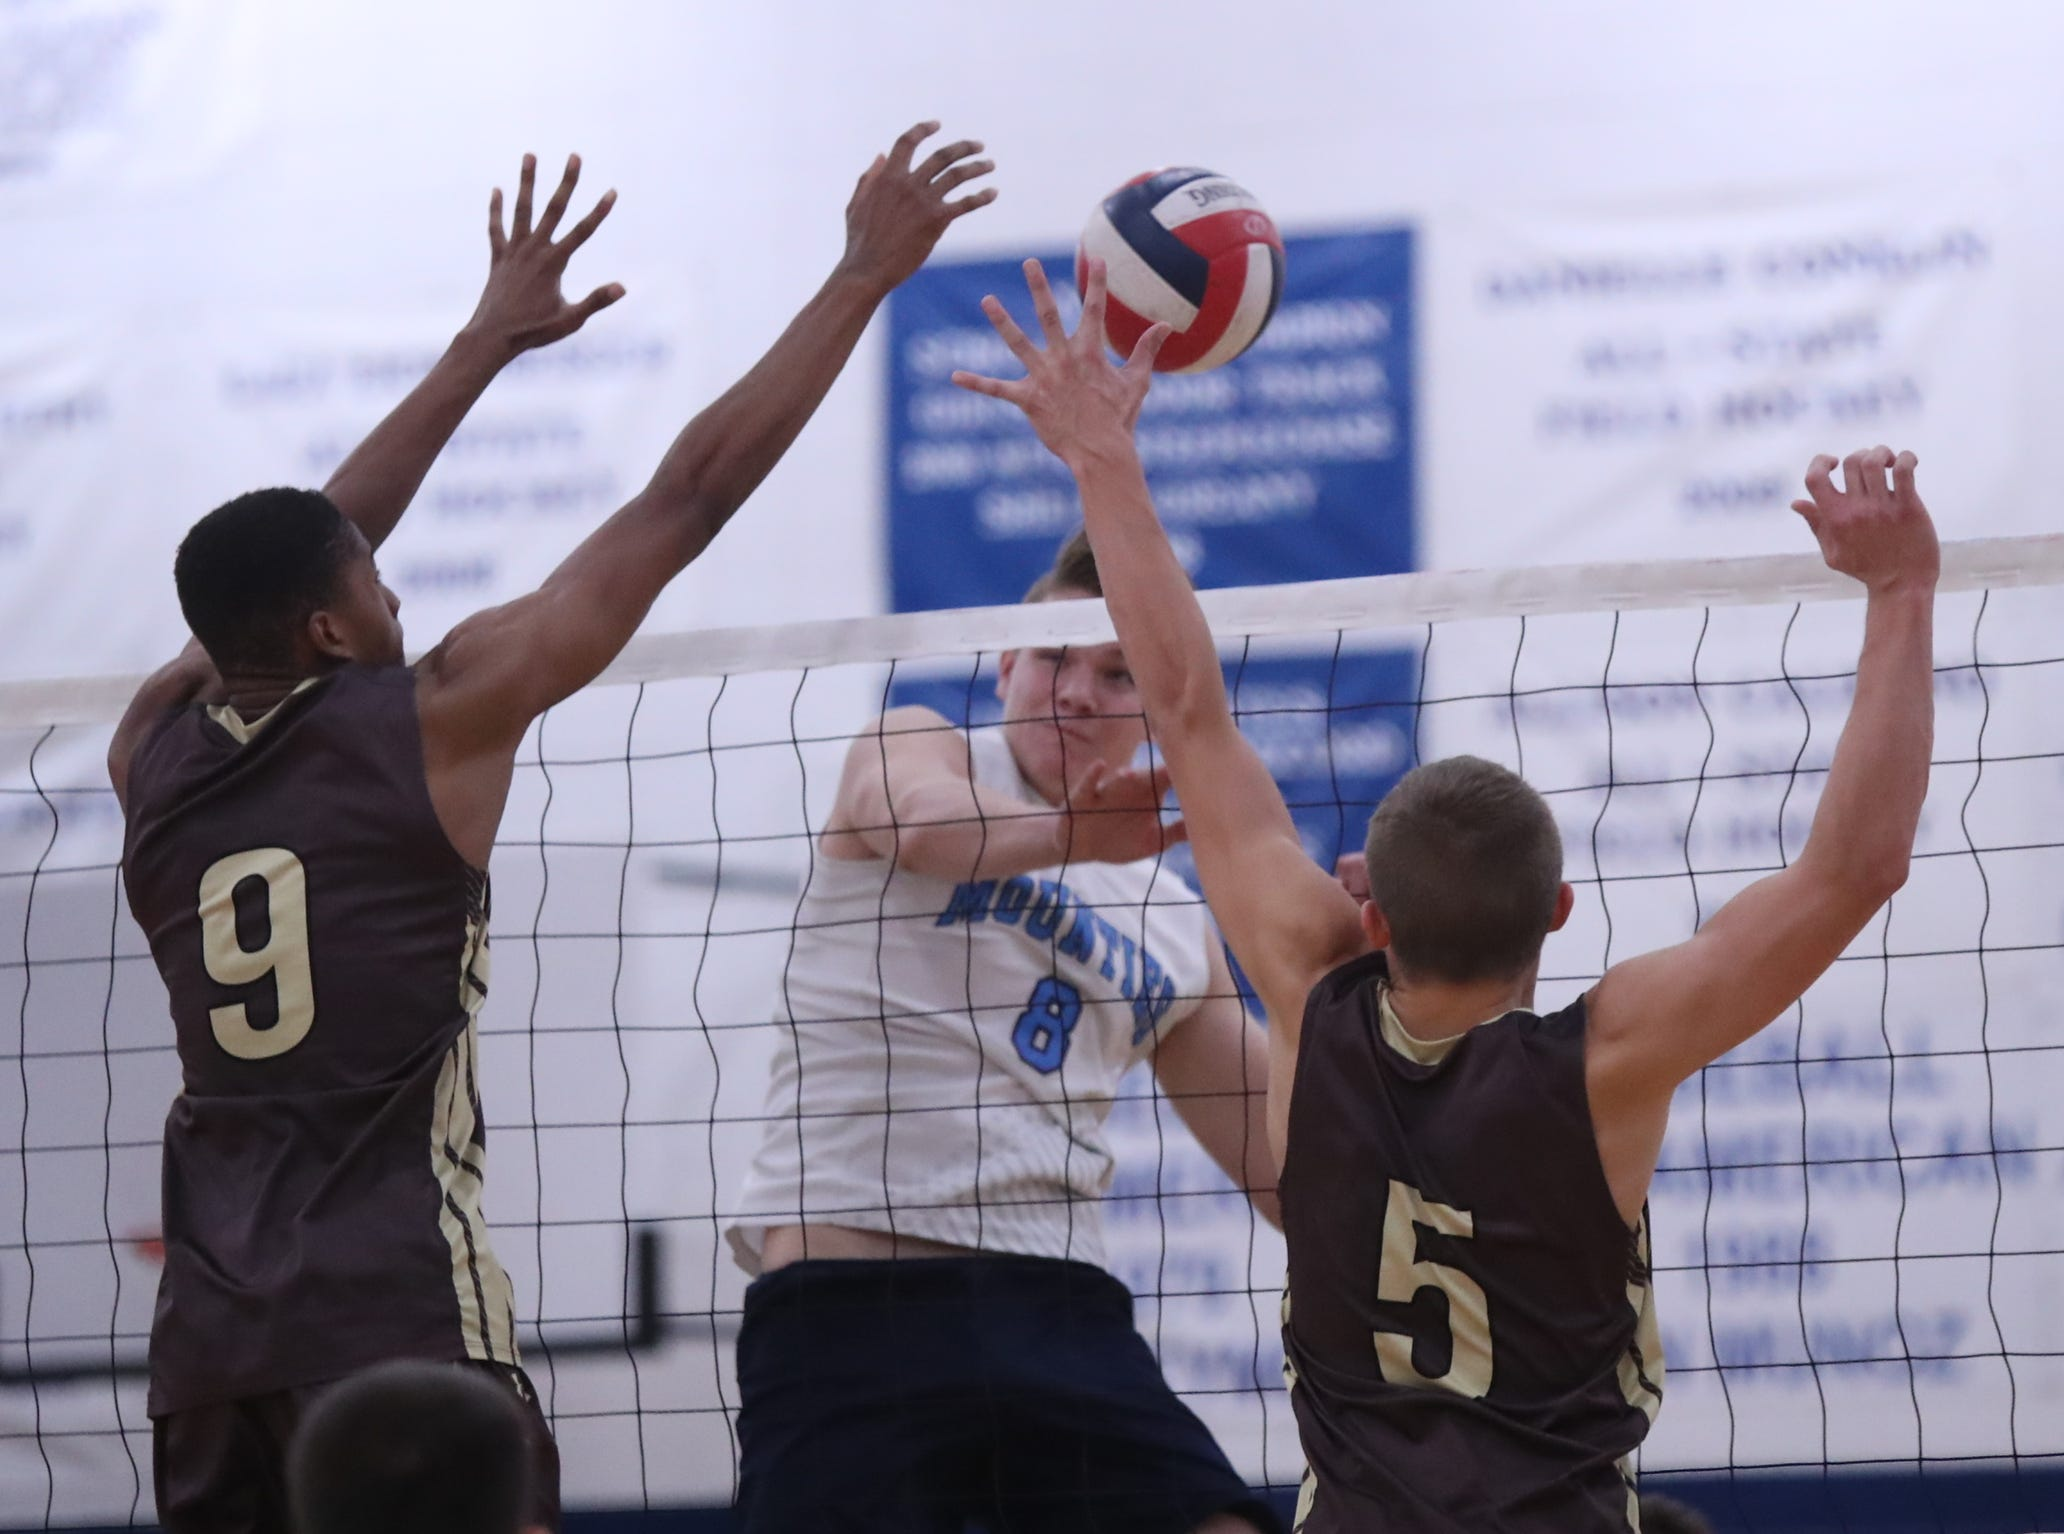 Suffern's Danny Kenny (8) hits a shot in between Clarkstown South's Fisher Miles (9) and Trevor Montana (5) during their 3-1 win in boys volleyball action at Suffern High School in Suffern on Thursday, October 11, 2018.